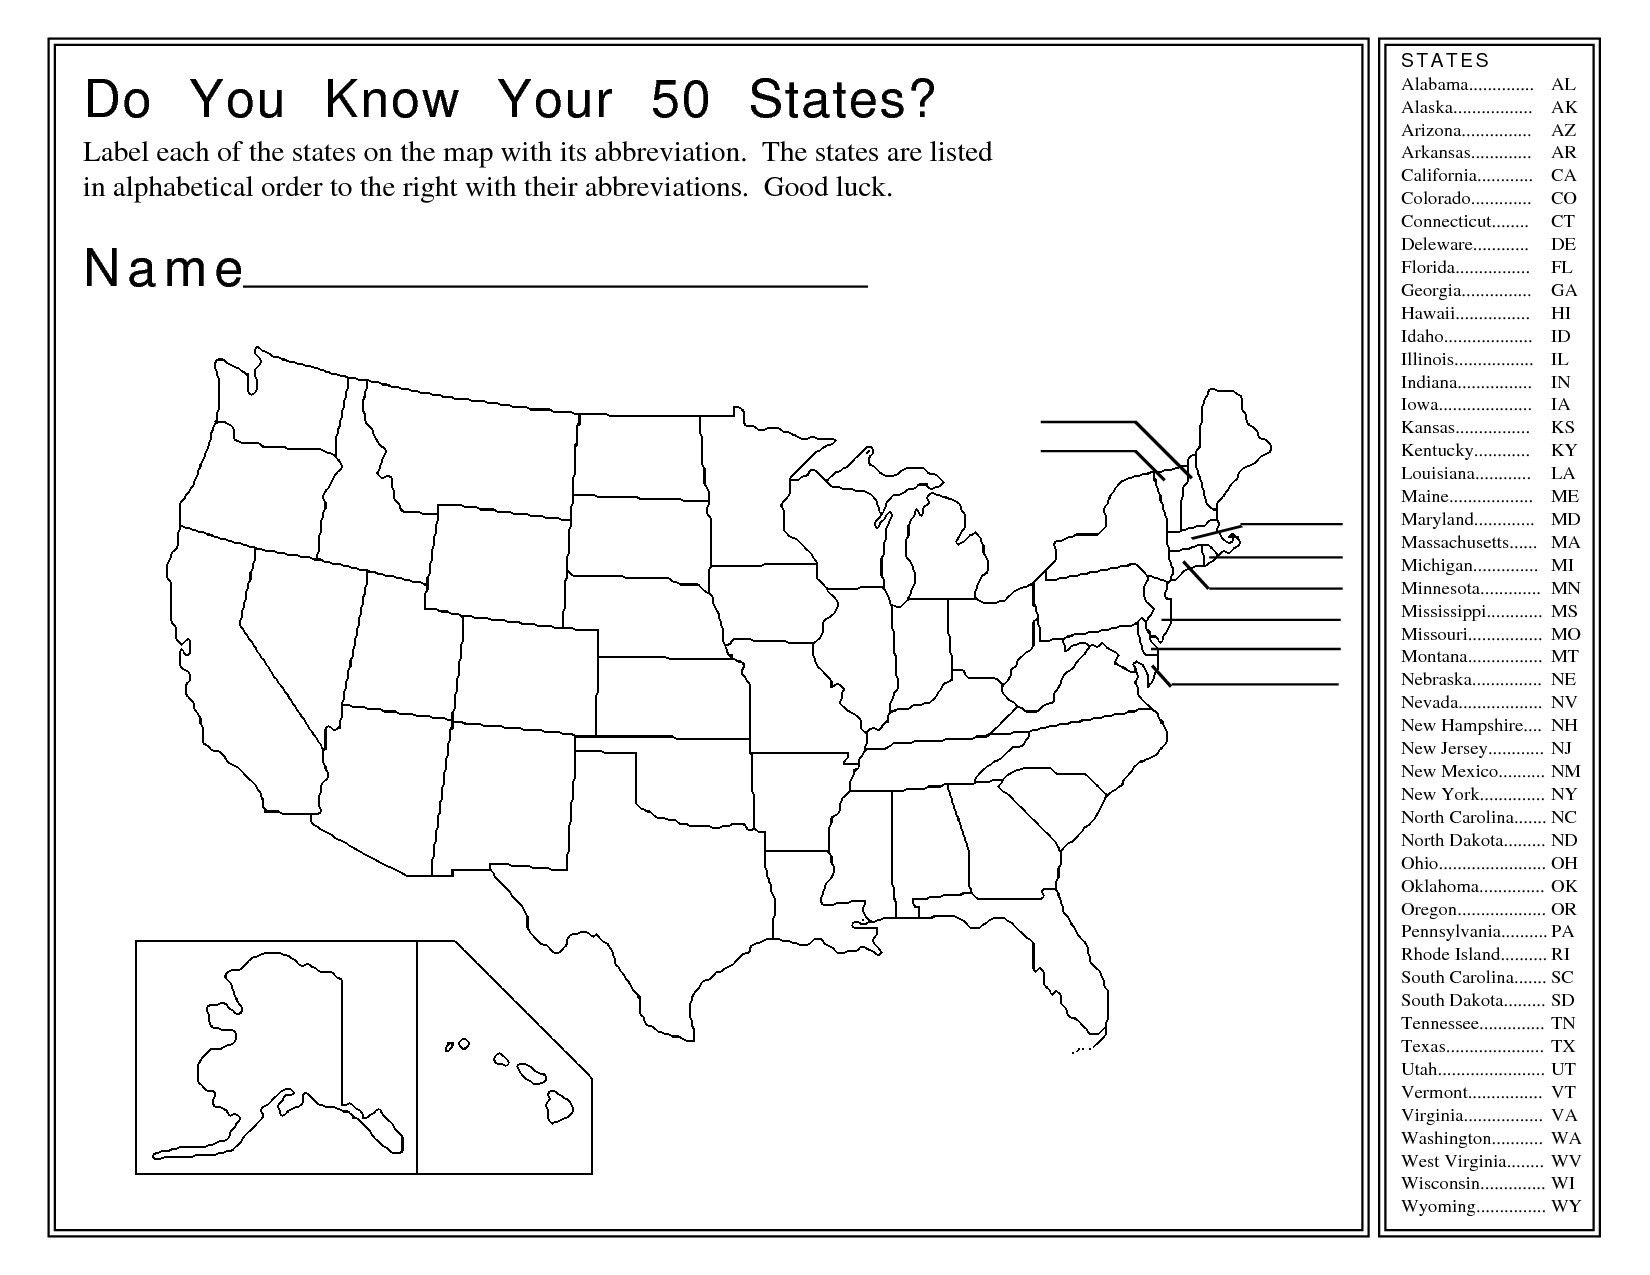 Us State Map Quiz Printable Best 25 Map Quiz Ideas On ... on major rivers map quiz, river valley civilizations map quiz, indonesia map quiz, rome map quiz, biome map quiz, england map quiz, 2nd grade map quiz, new zealand map quiz, americas map quiz, earth map quiz, puerto rico map quiz, climate map quiz, polynesia map quiz, us regions map quiz, landforms map quiz, cuba map quiz, california map quiz, anthropology map quiz, switzerland map quiz, italian map quiz,